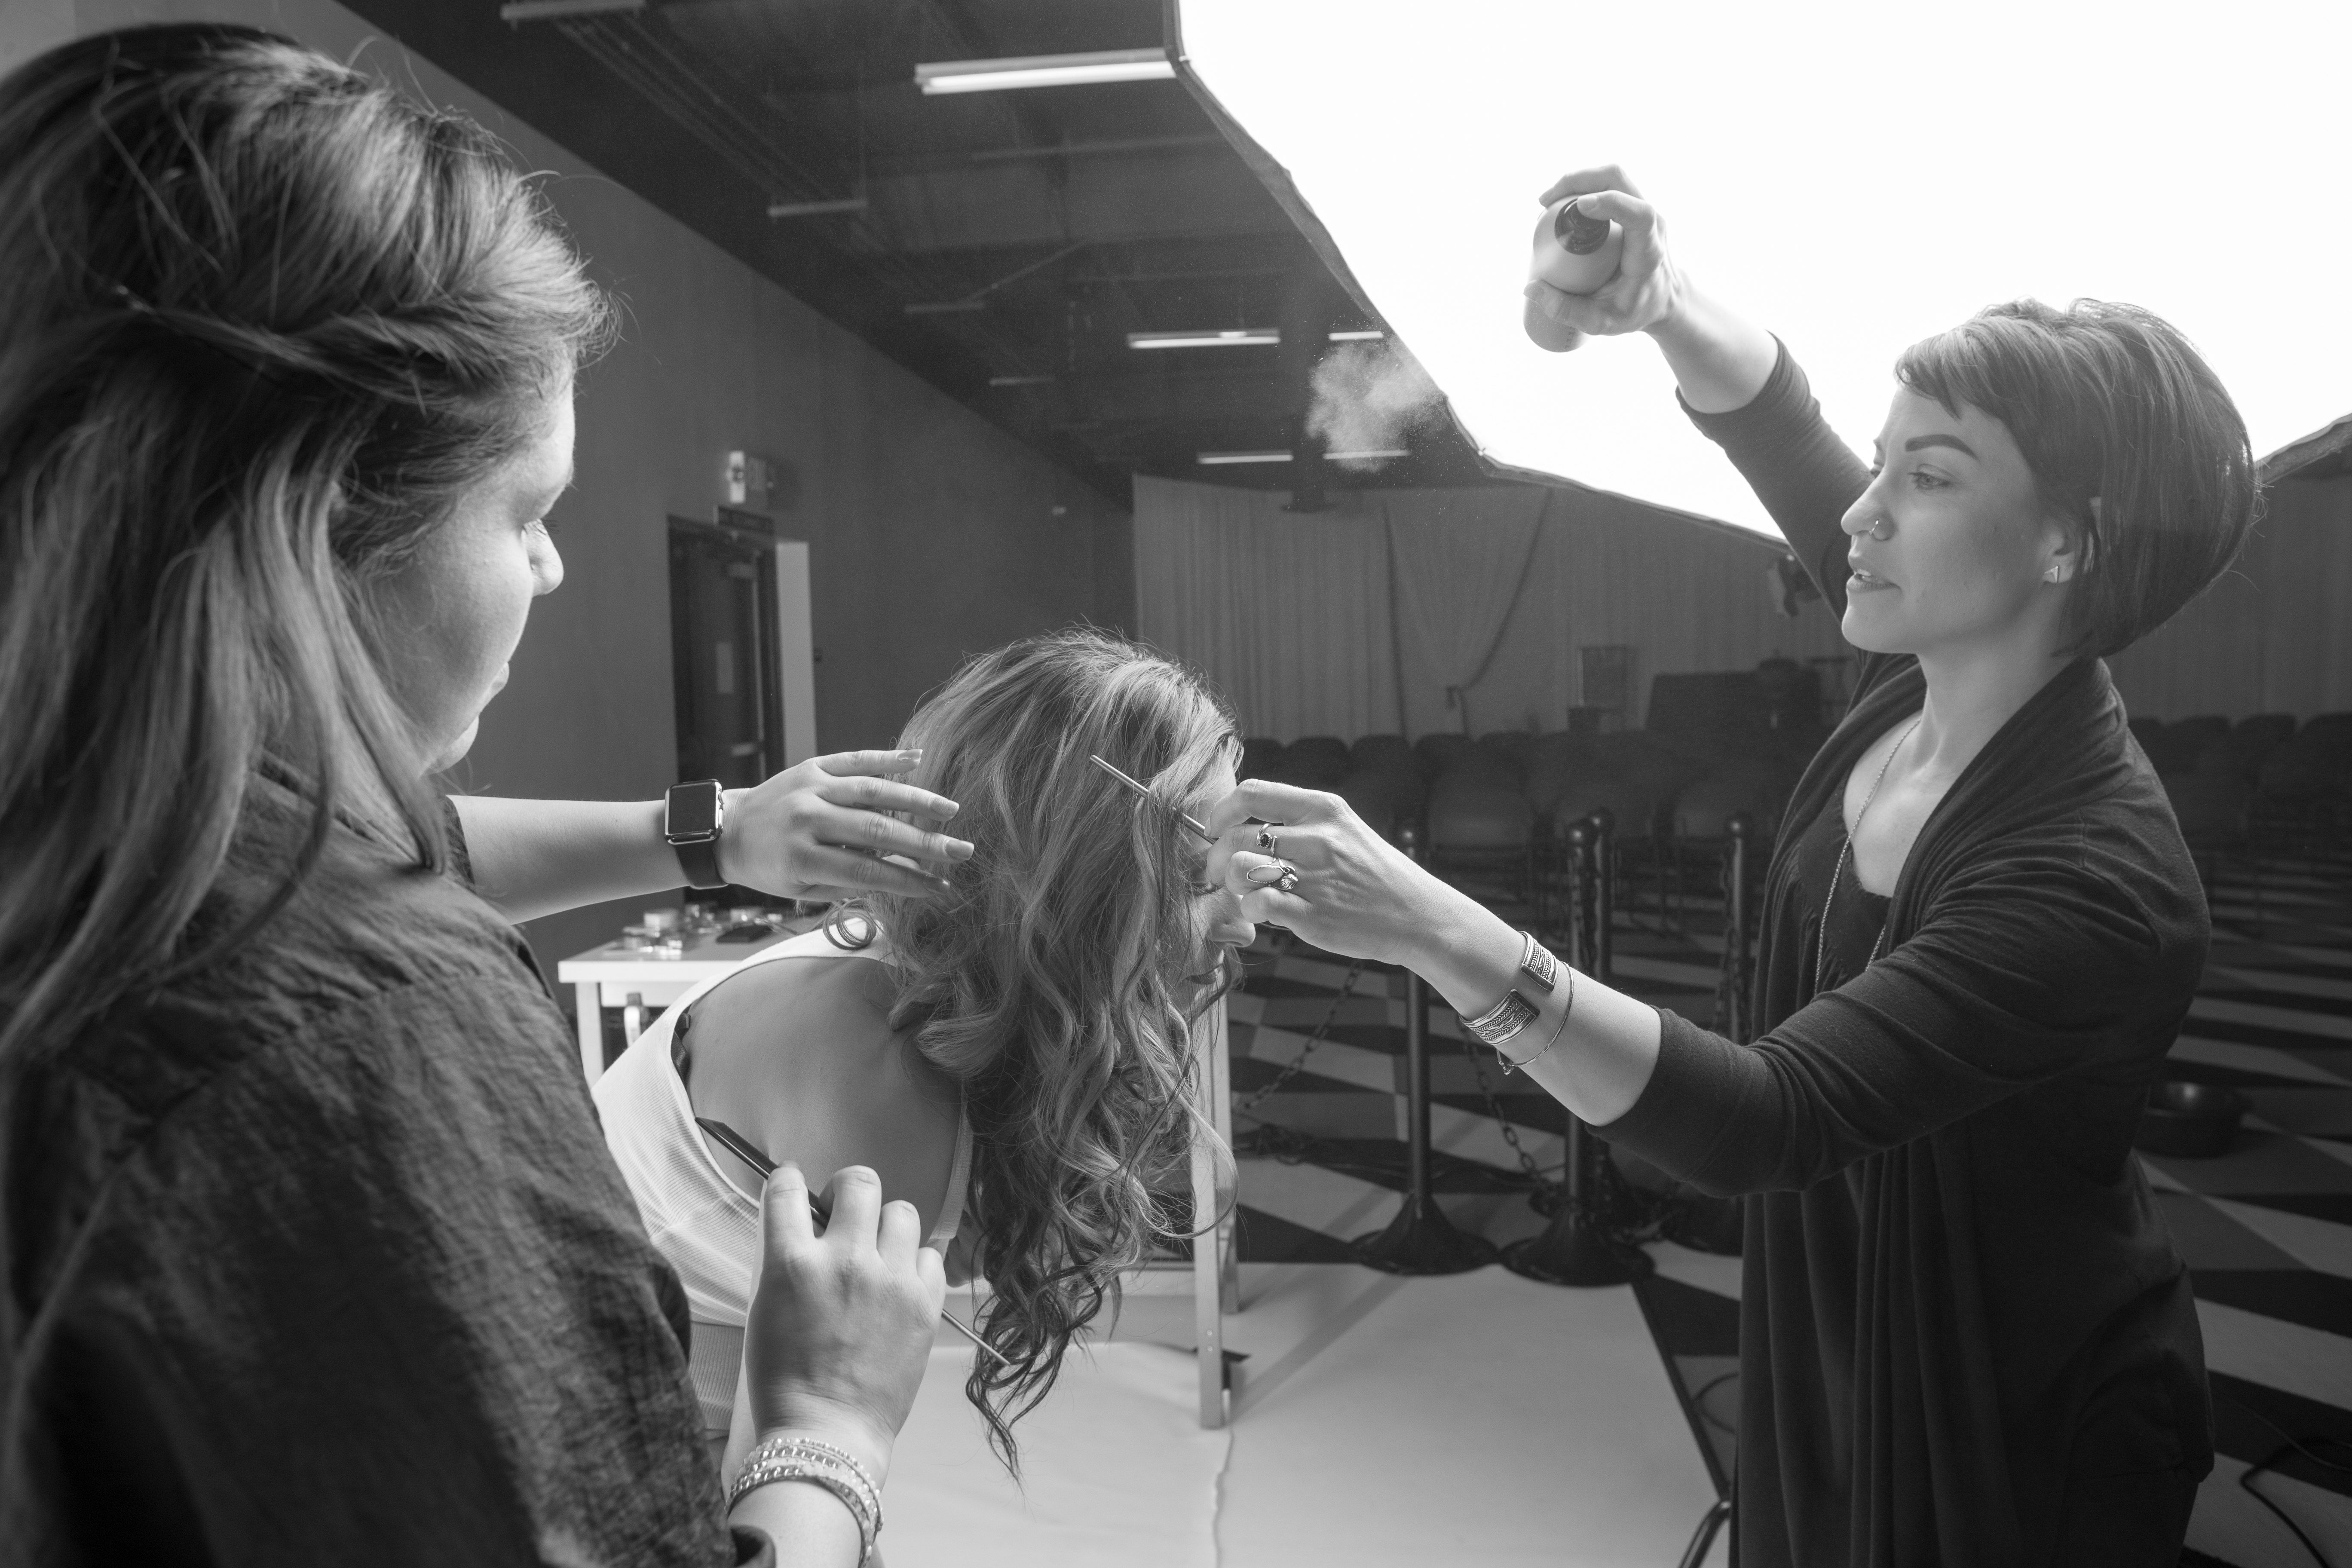 Prepping for the photo shoot, using lots of hairspray!